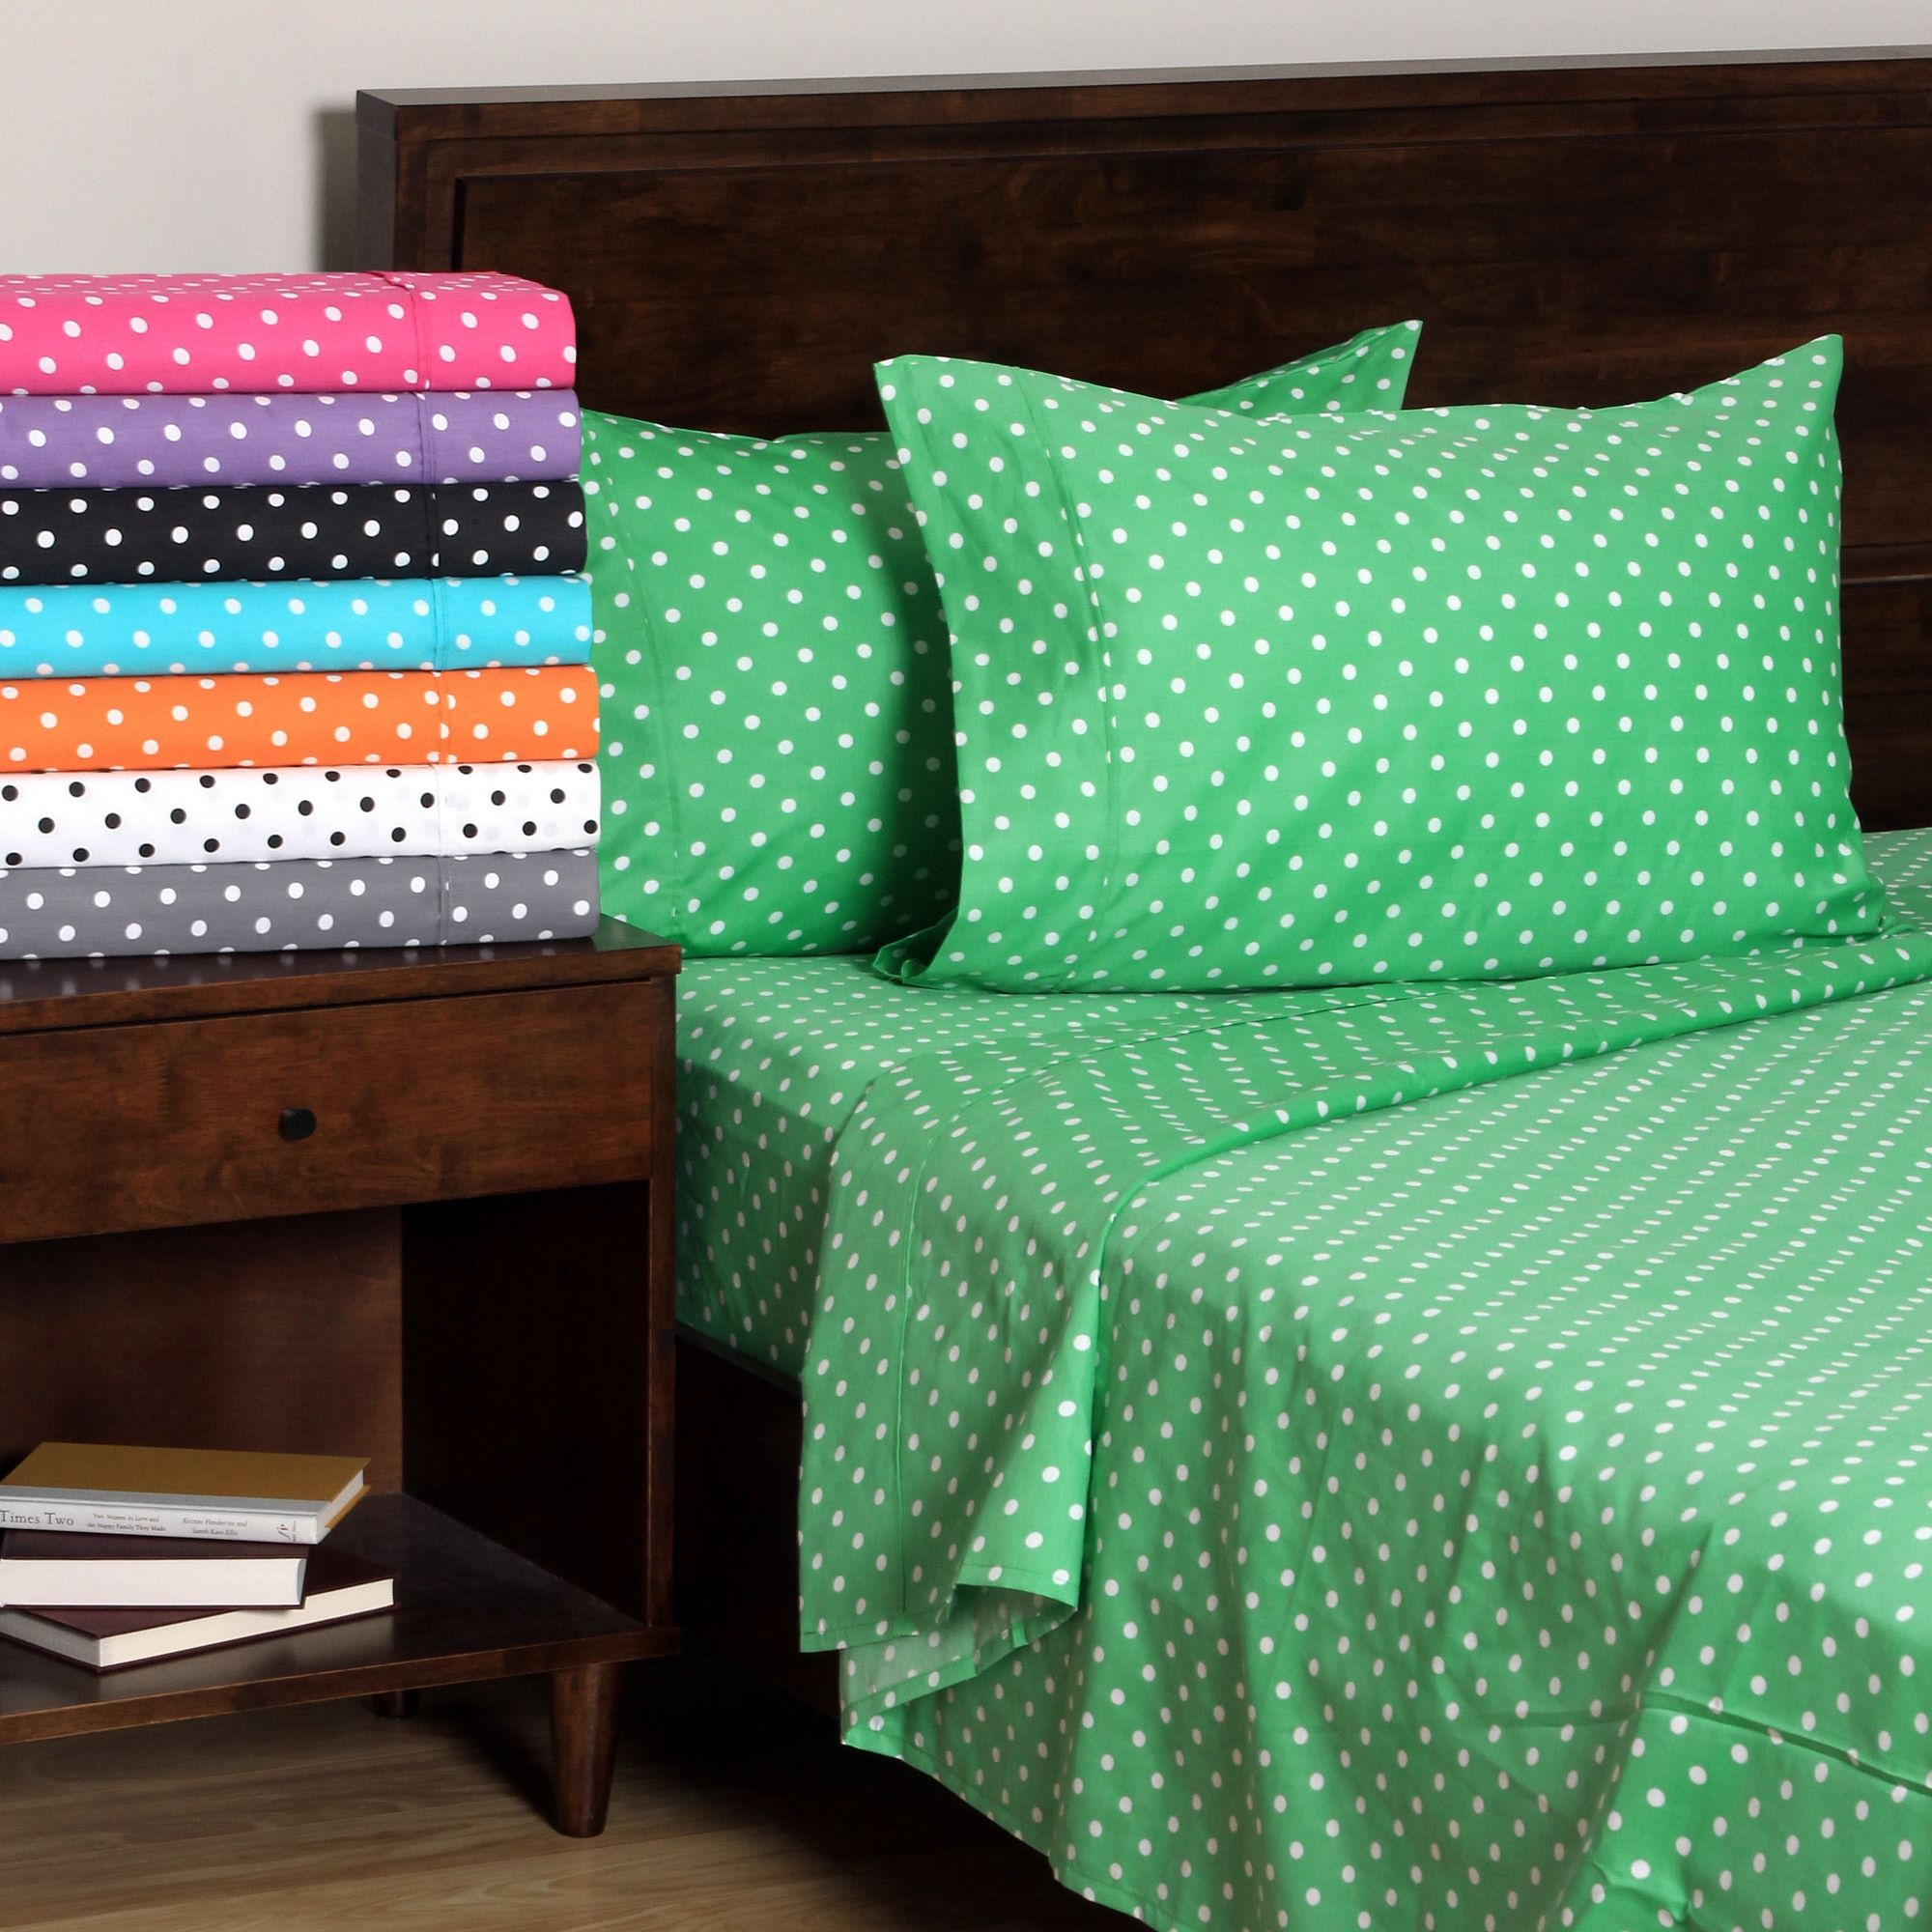 Superior 600 Thread Count Deep Pocket Polka Dot Cotton